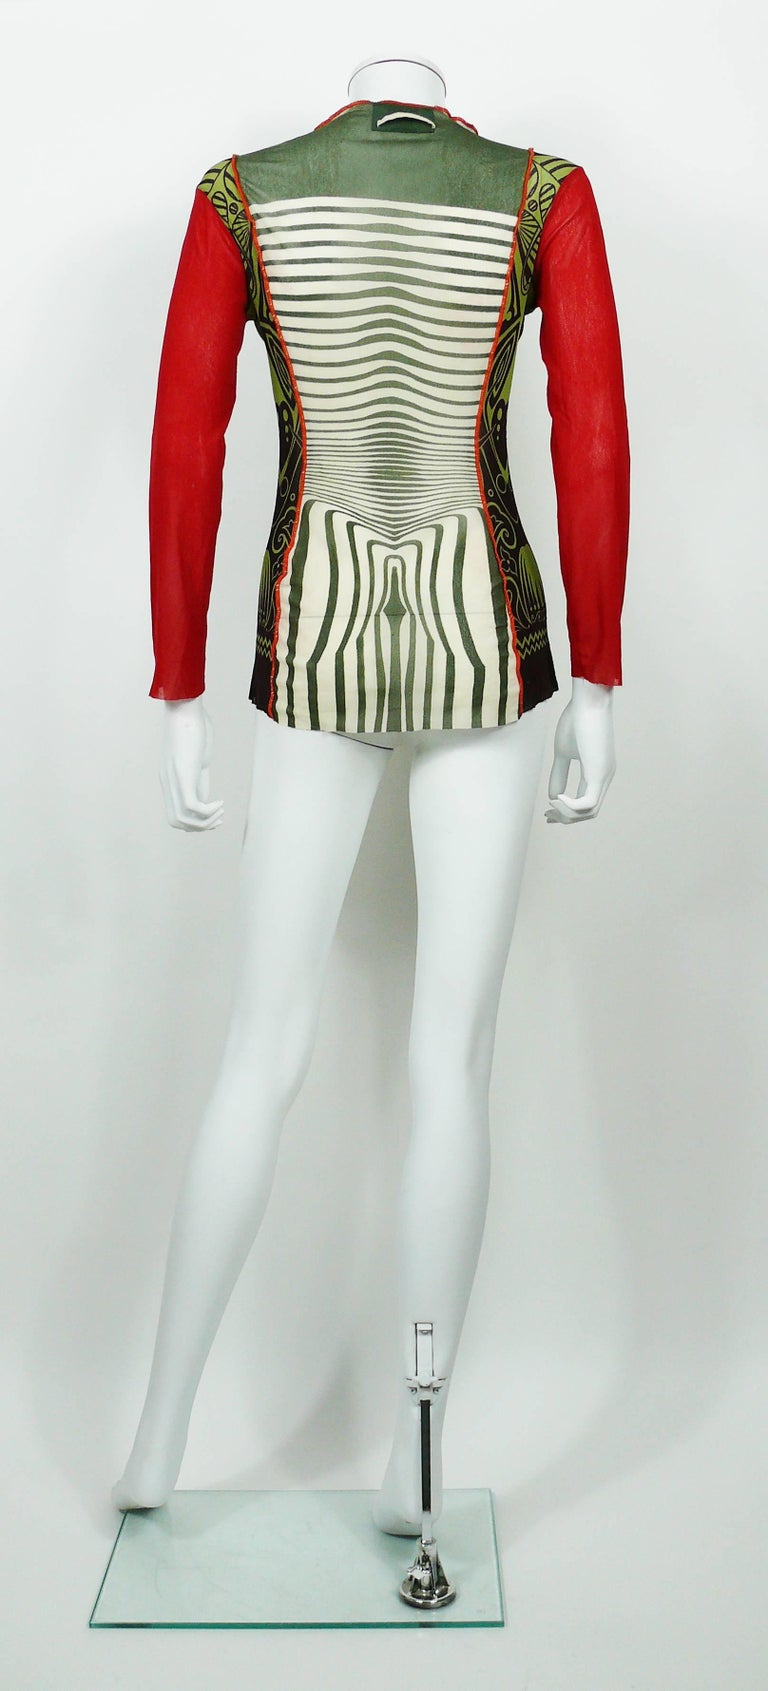 Jean Paul Gaultier Vintage 1996 Cyberbaba Body Map Optical Illusion Top Size L 3